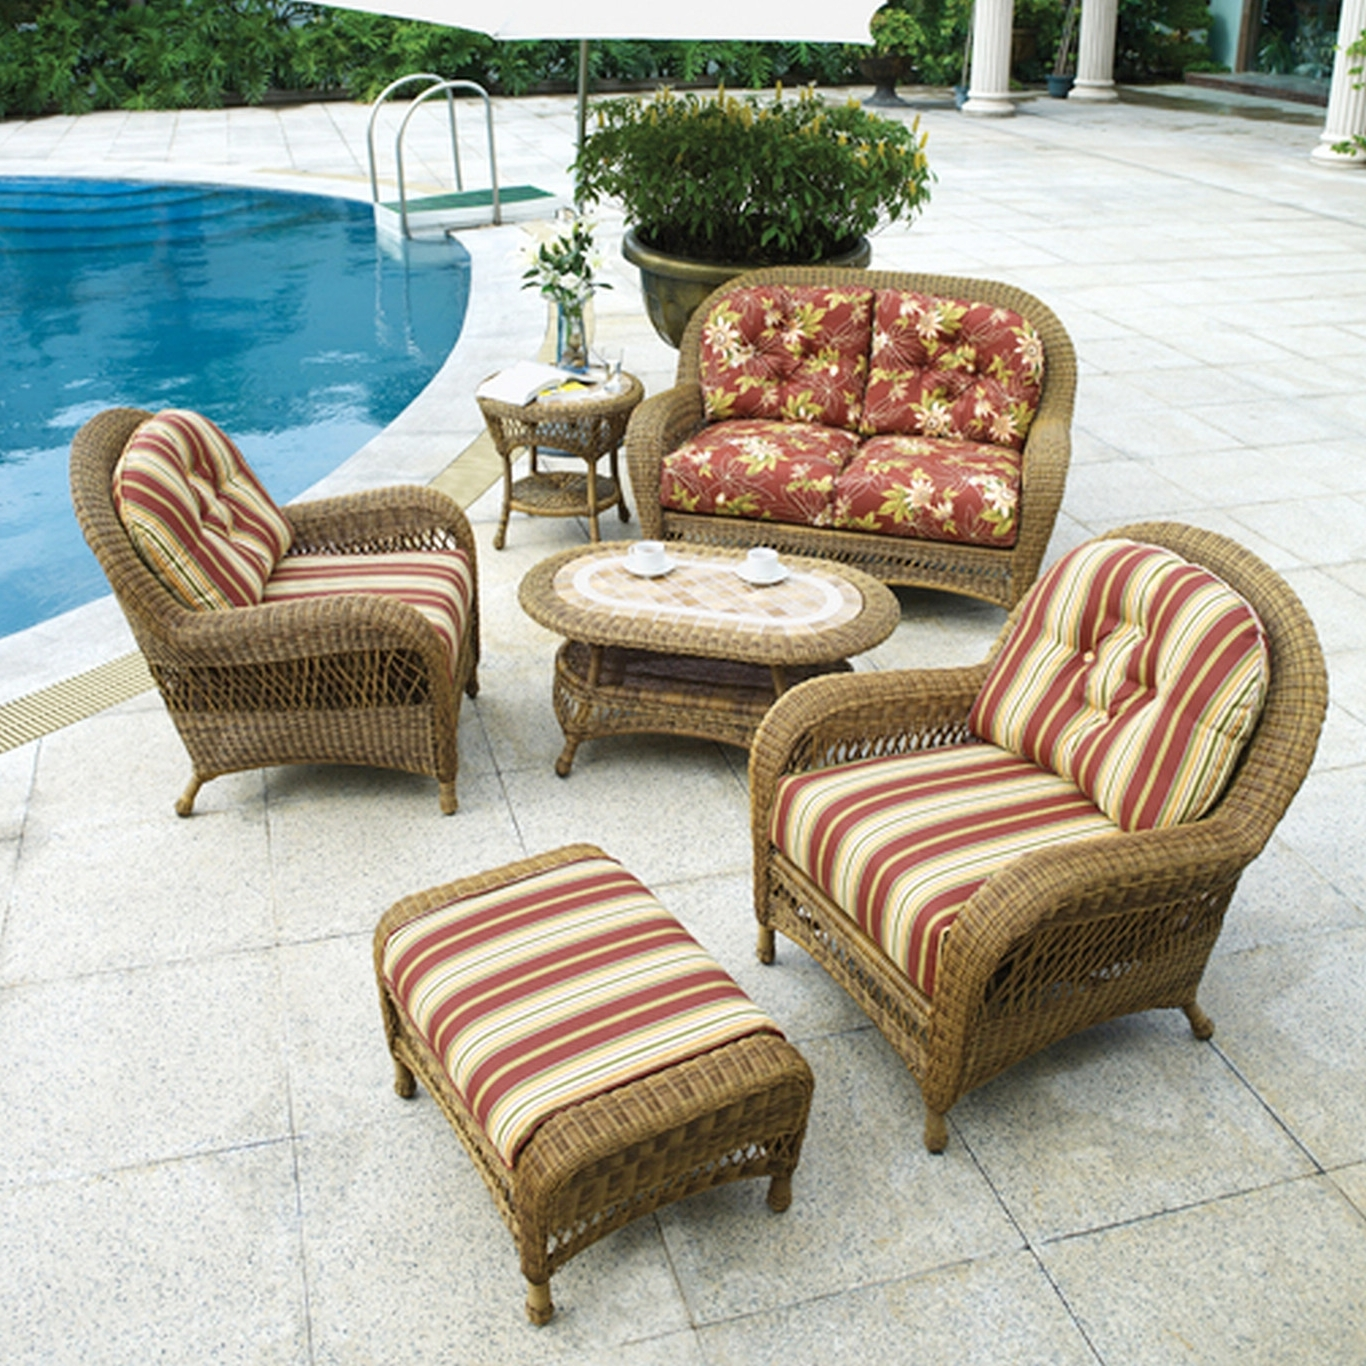 Sunbrella Outdoor Furniture Sunbrella Lounge Chairs Macys Inside Preferred Macys Outdoor Chaise Lounge Chairs (View 5 of 15)